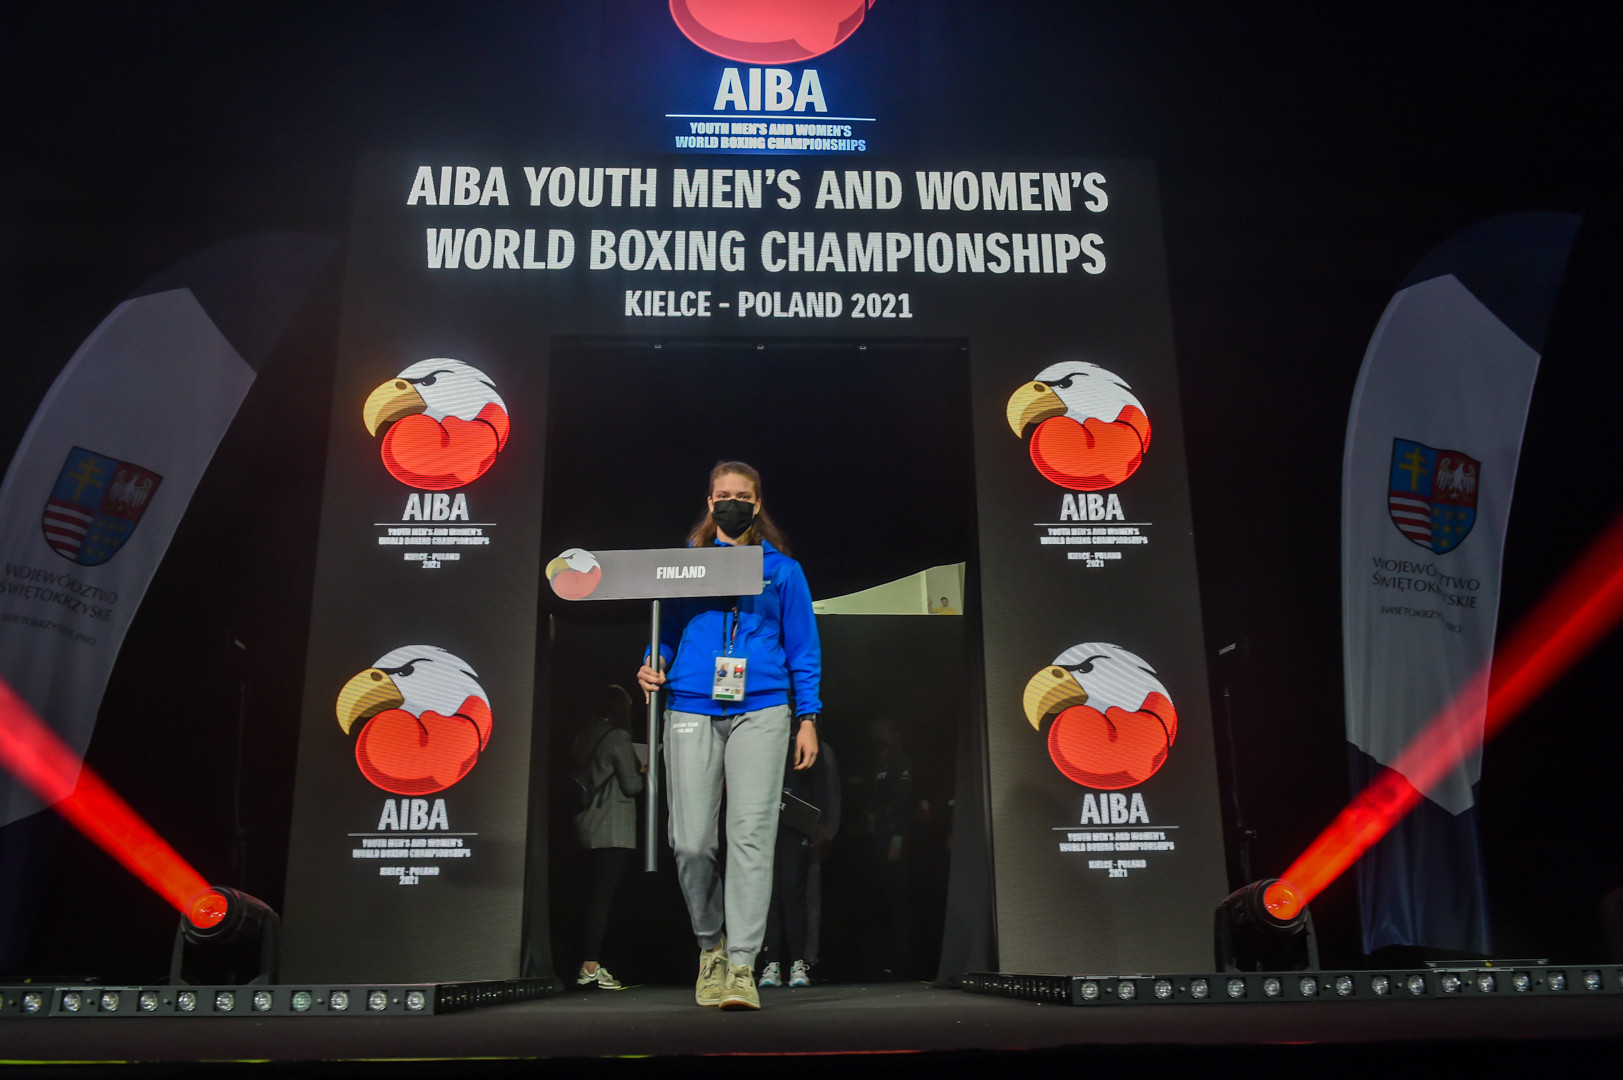 More than 400 boxers - male and female - are taking part in the Championships ©AIBA